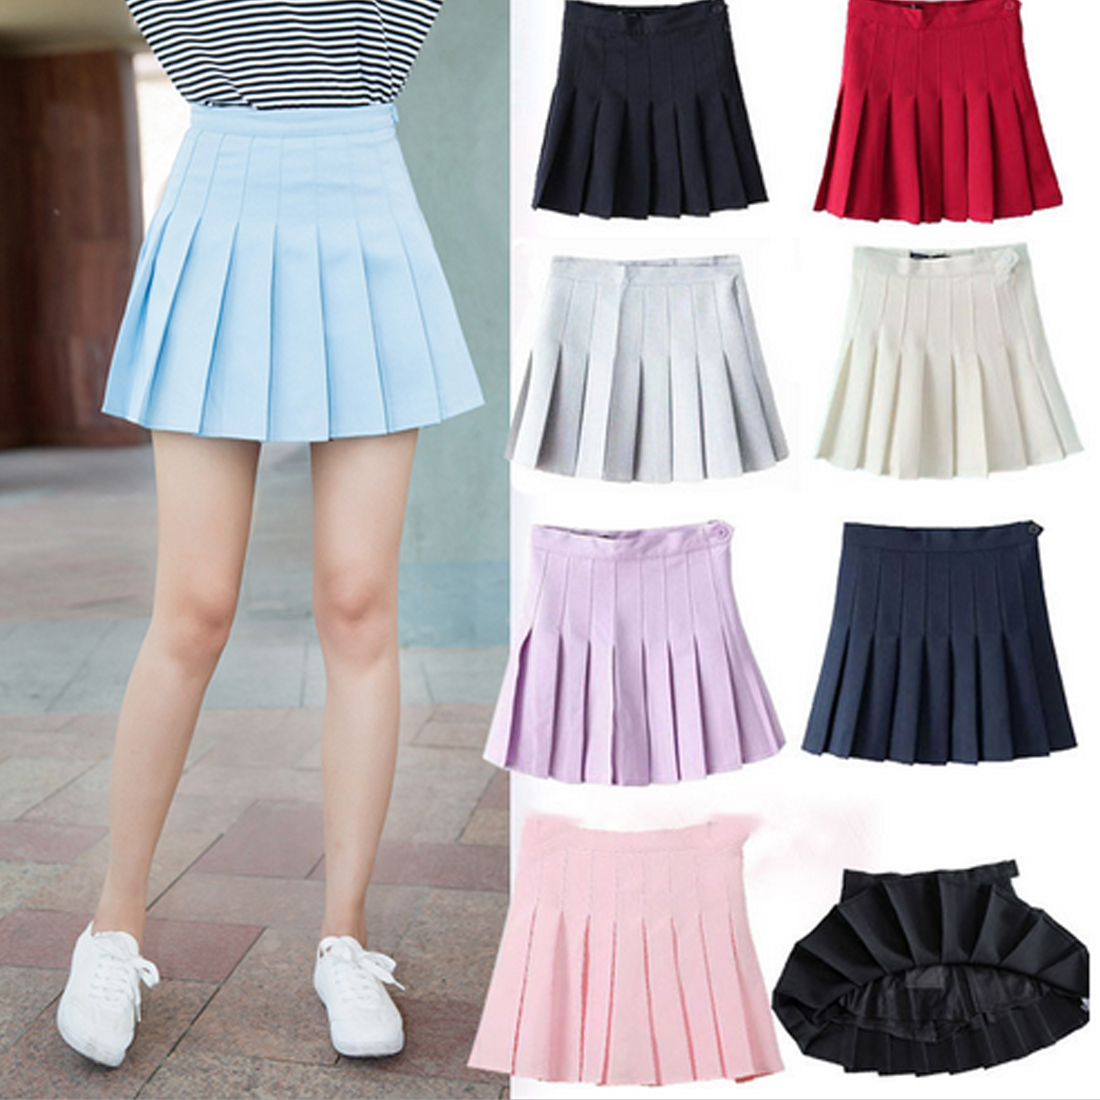 Top Sell Women Lady Cute High Waist Plain Skater Flared Pleated Short Mini Skirt Shorts High Quality Comfortable